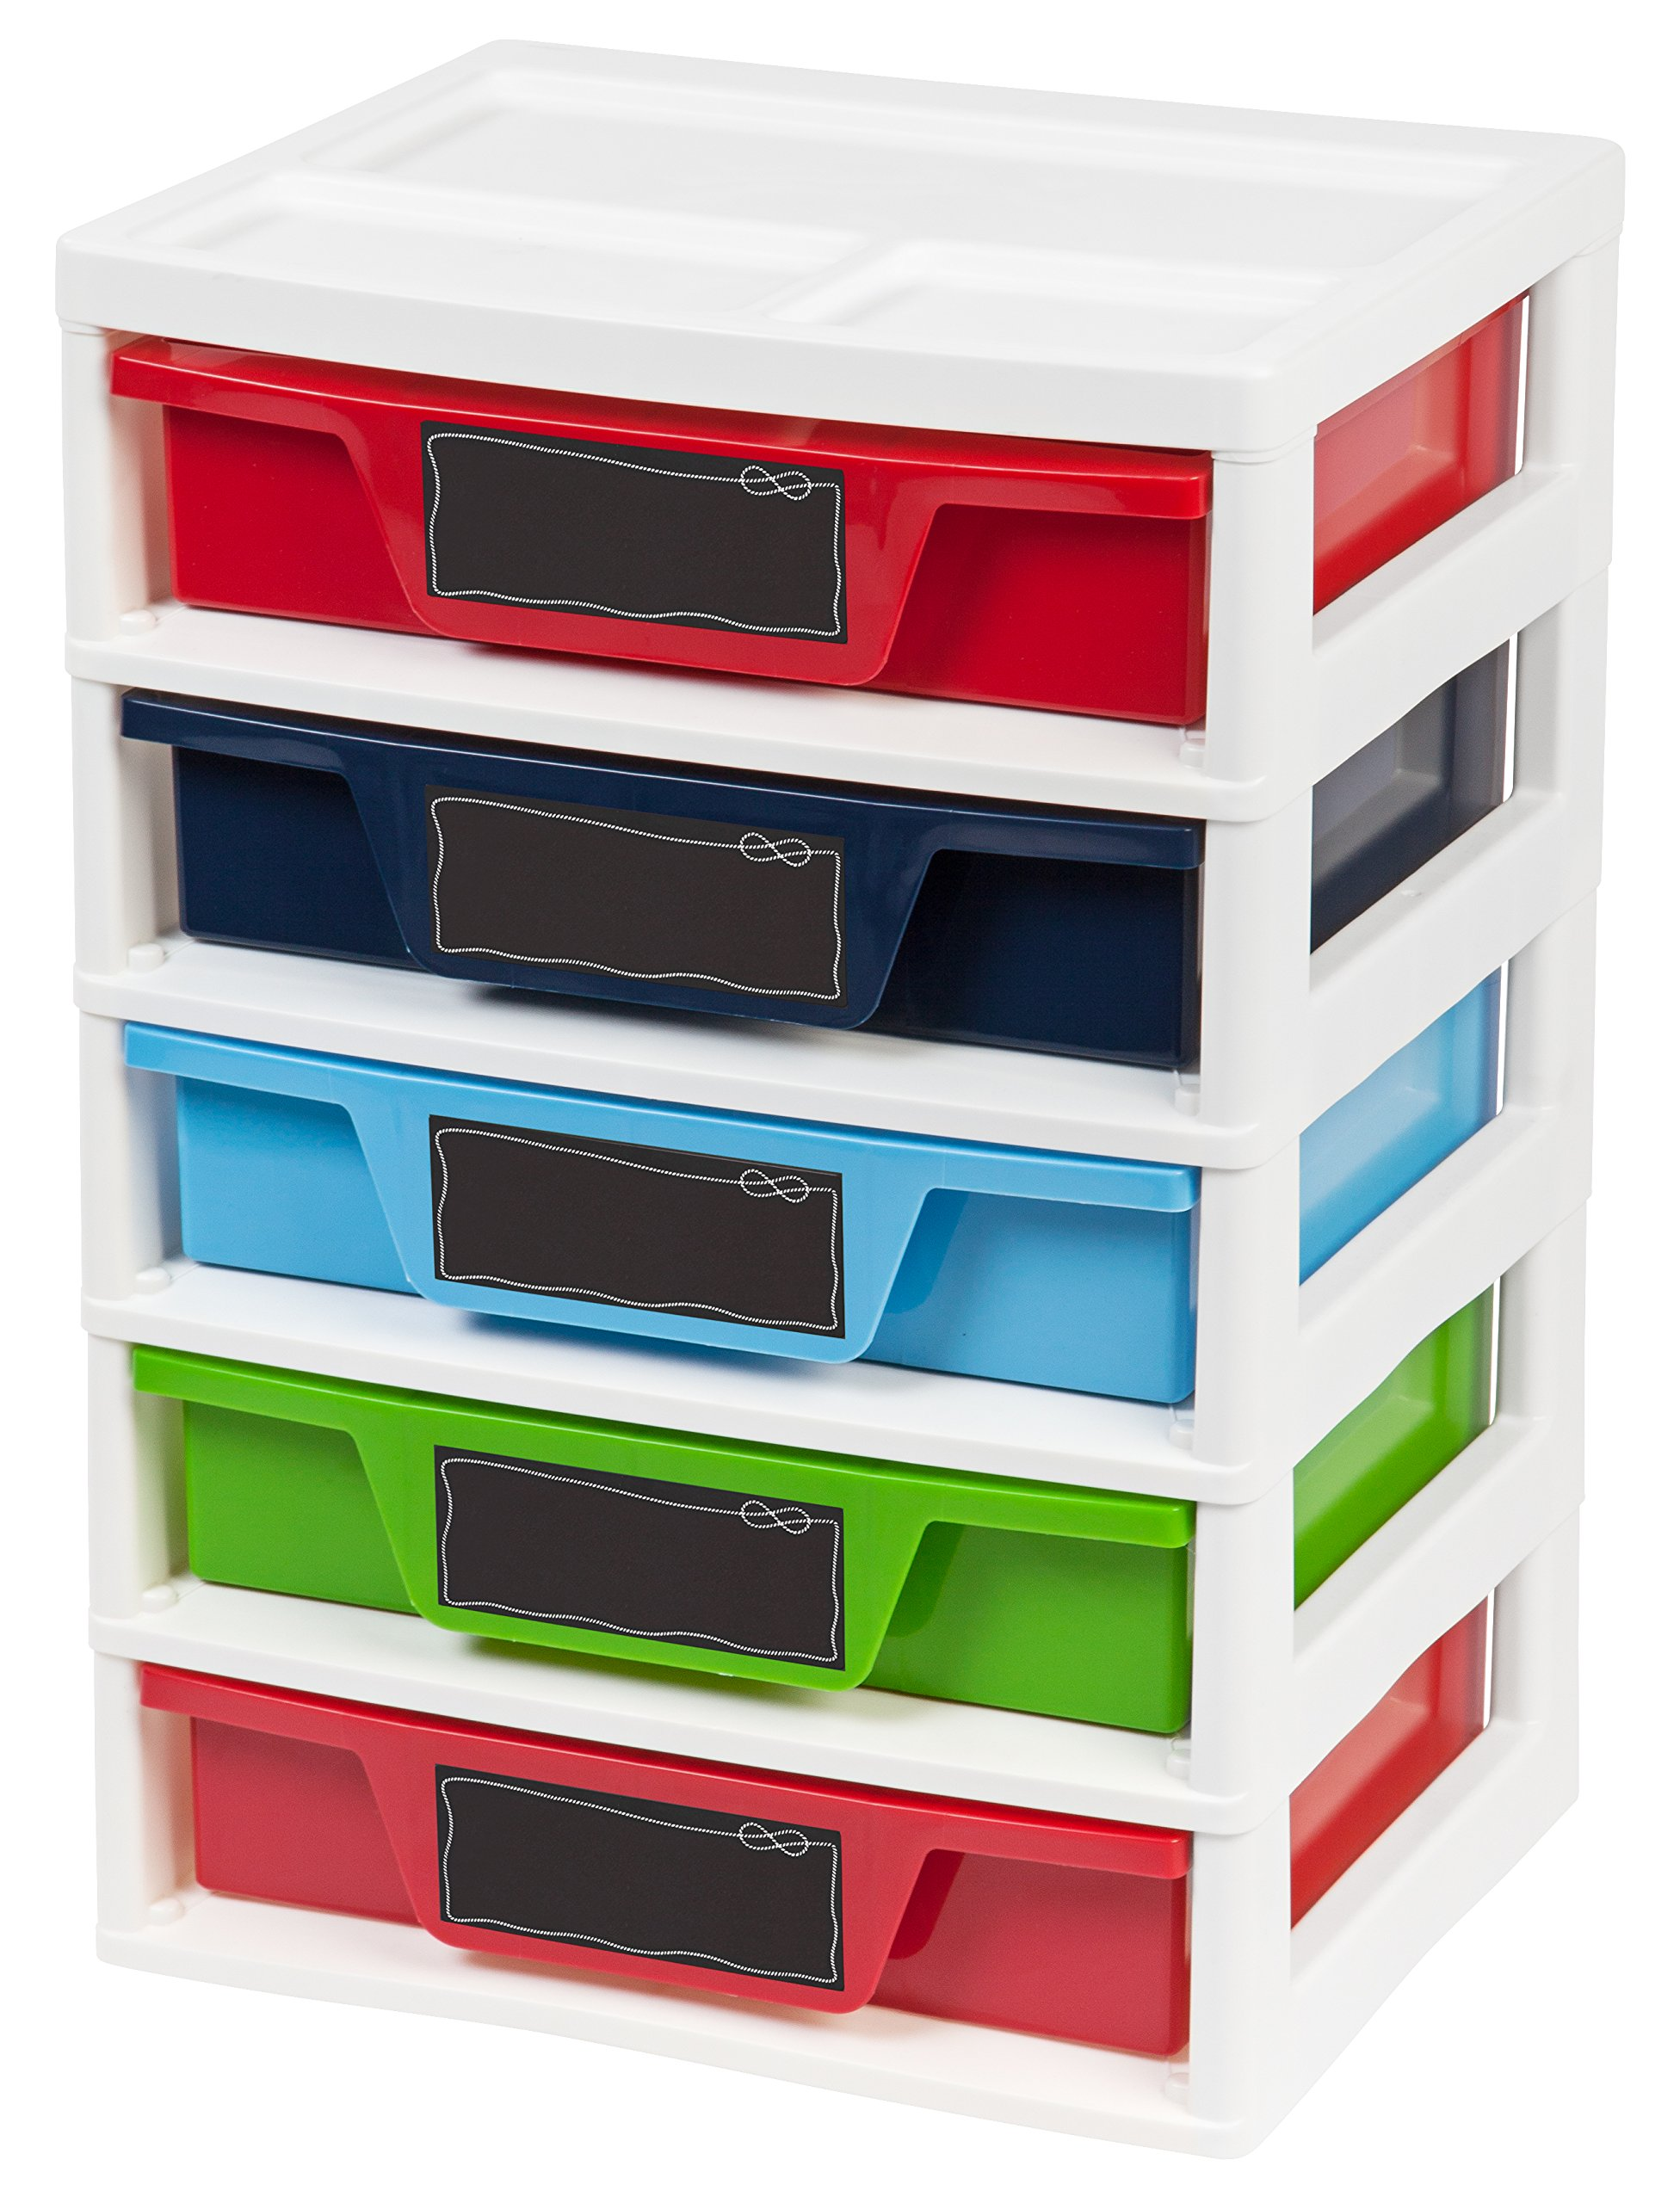 IRIS 5 Drawer Storage & Organizer Chest, Assorted Colors by IRIS USA, Inc. (Image #1)